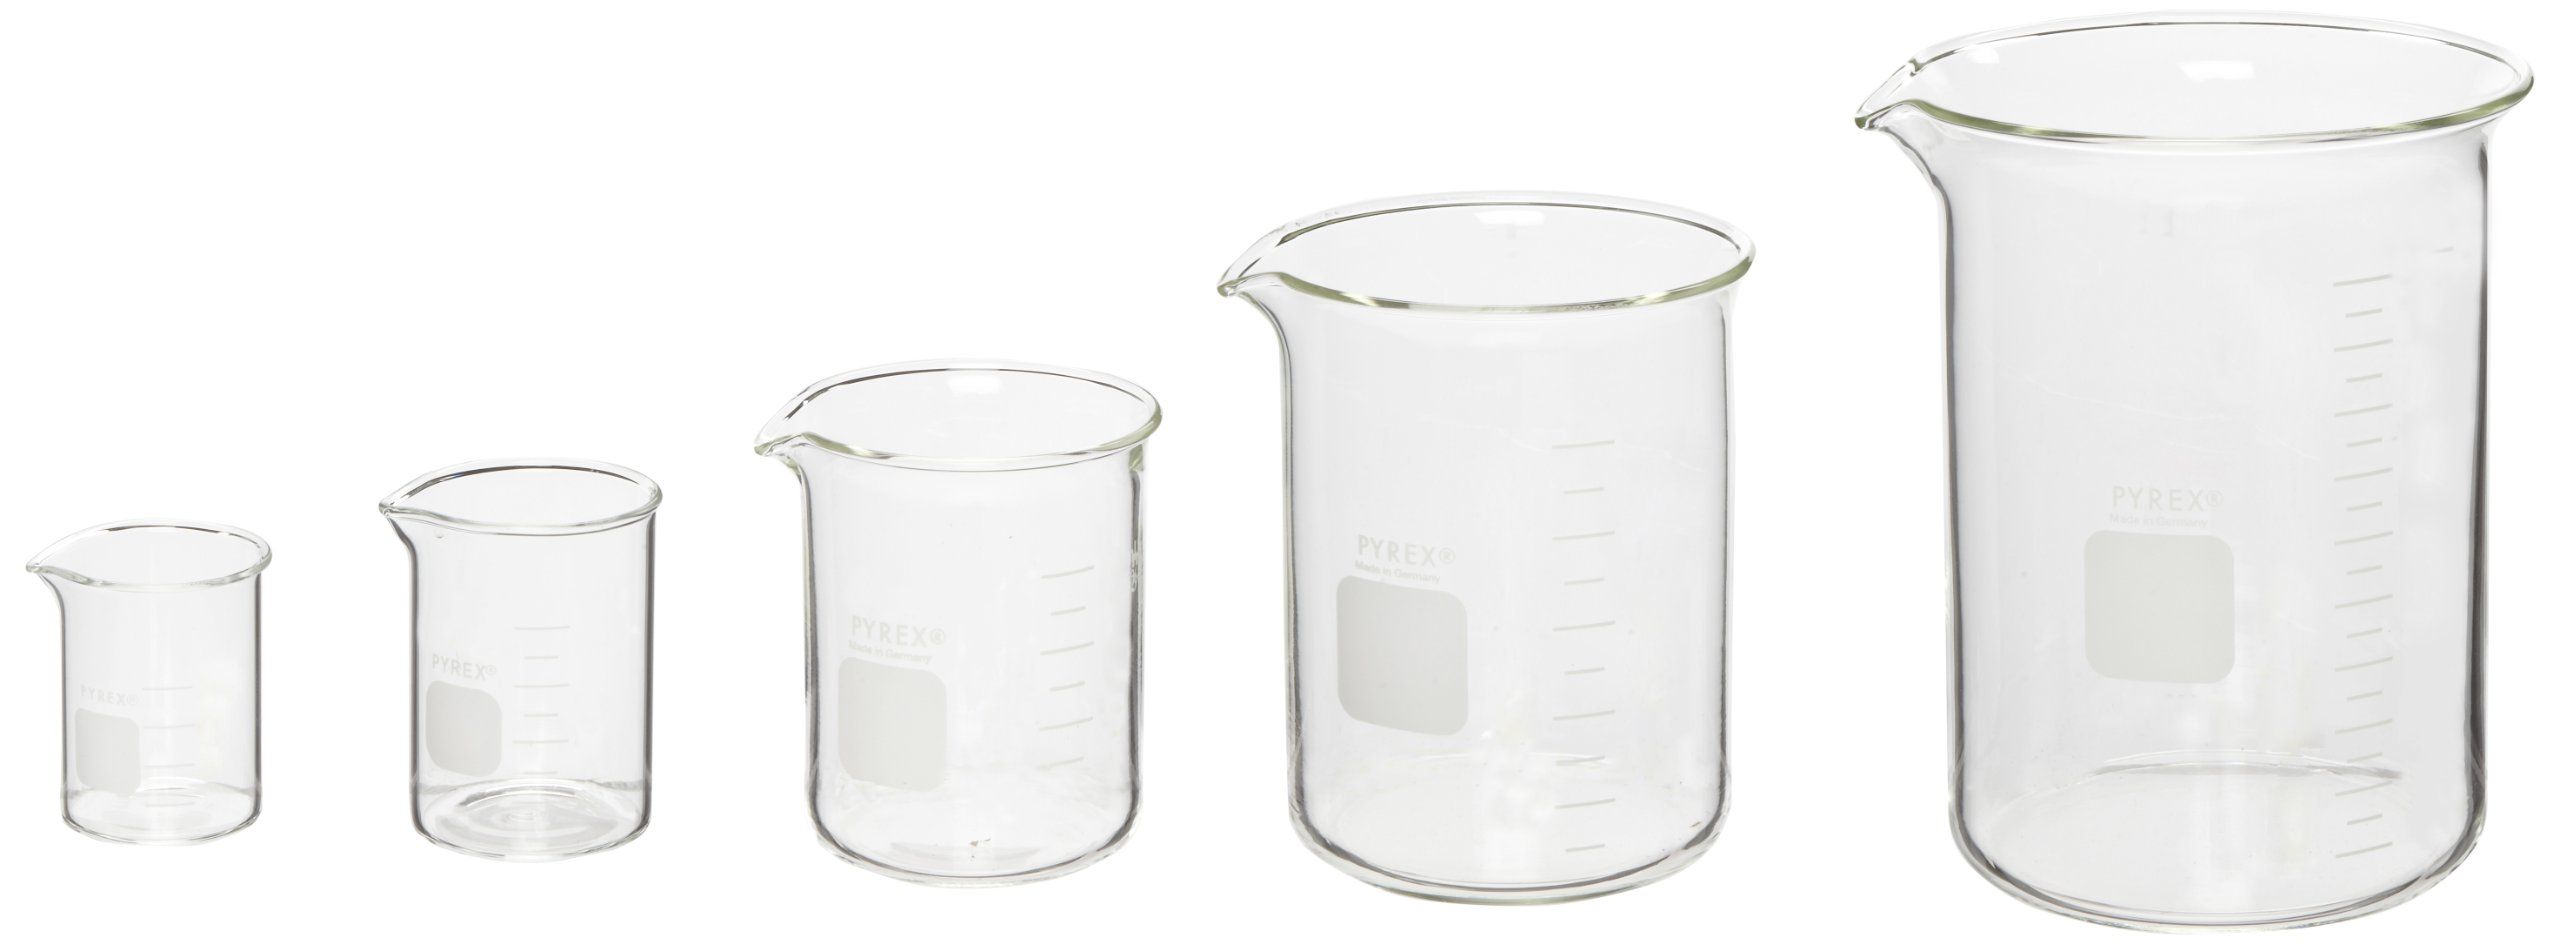 Corning Pyrex 5 Piece Glass Graduated Low Form Griffin Beaker Assortment Pack, with Double Scale